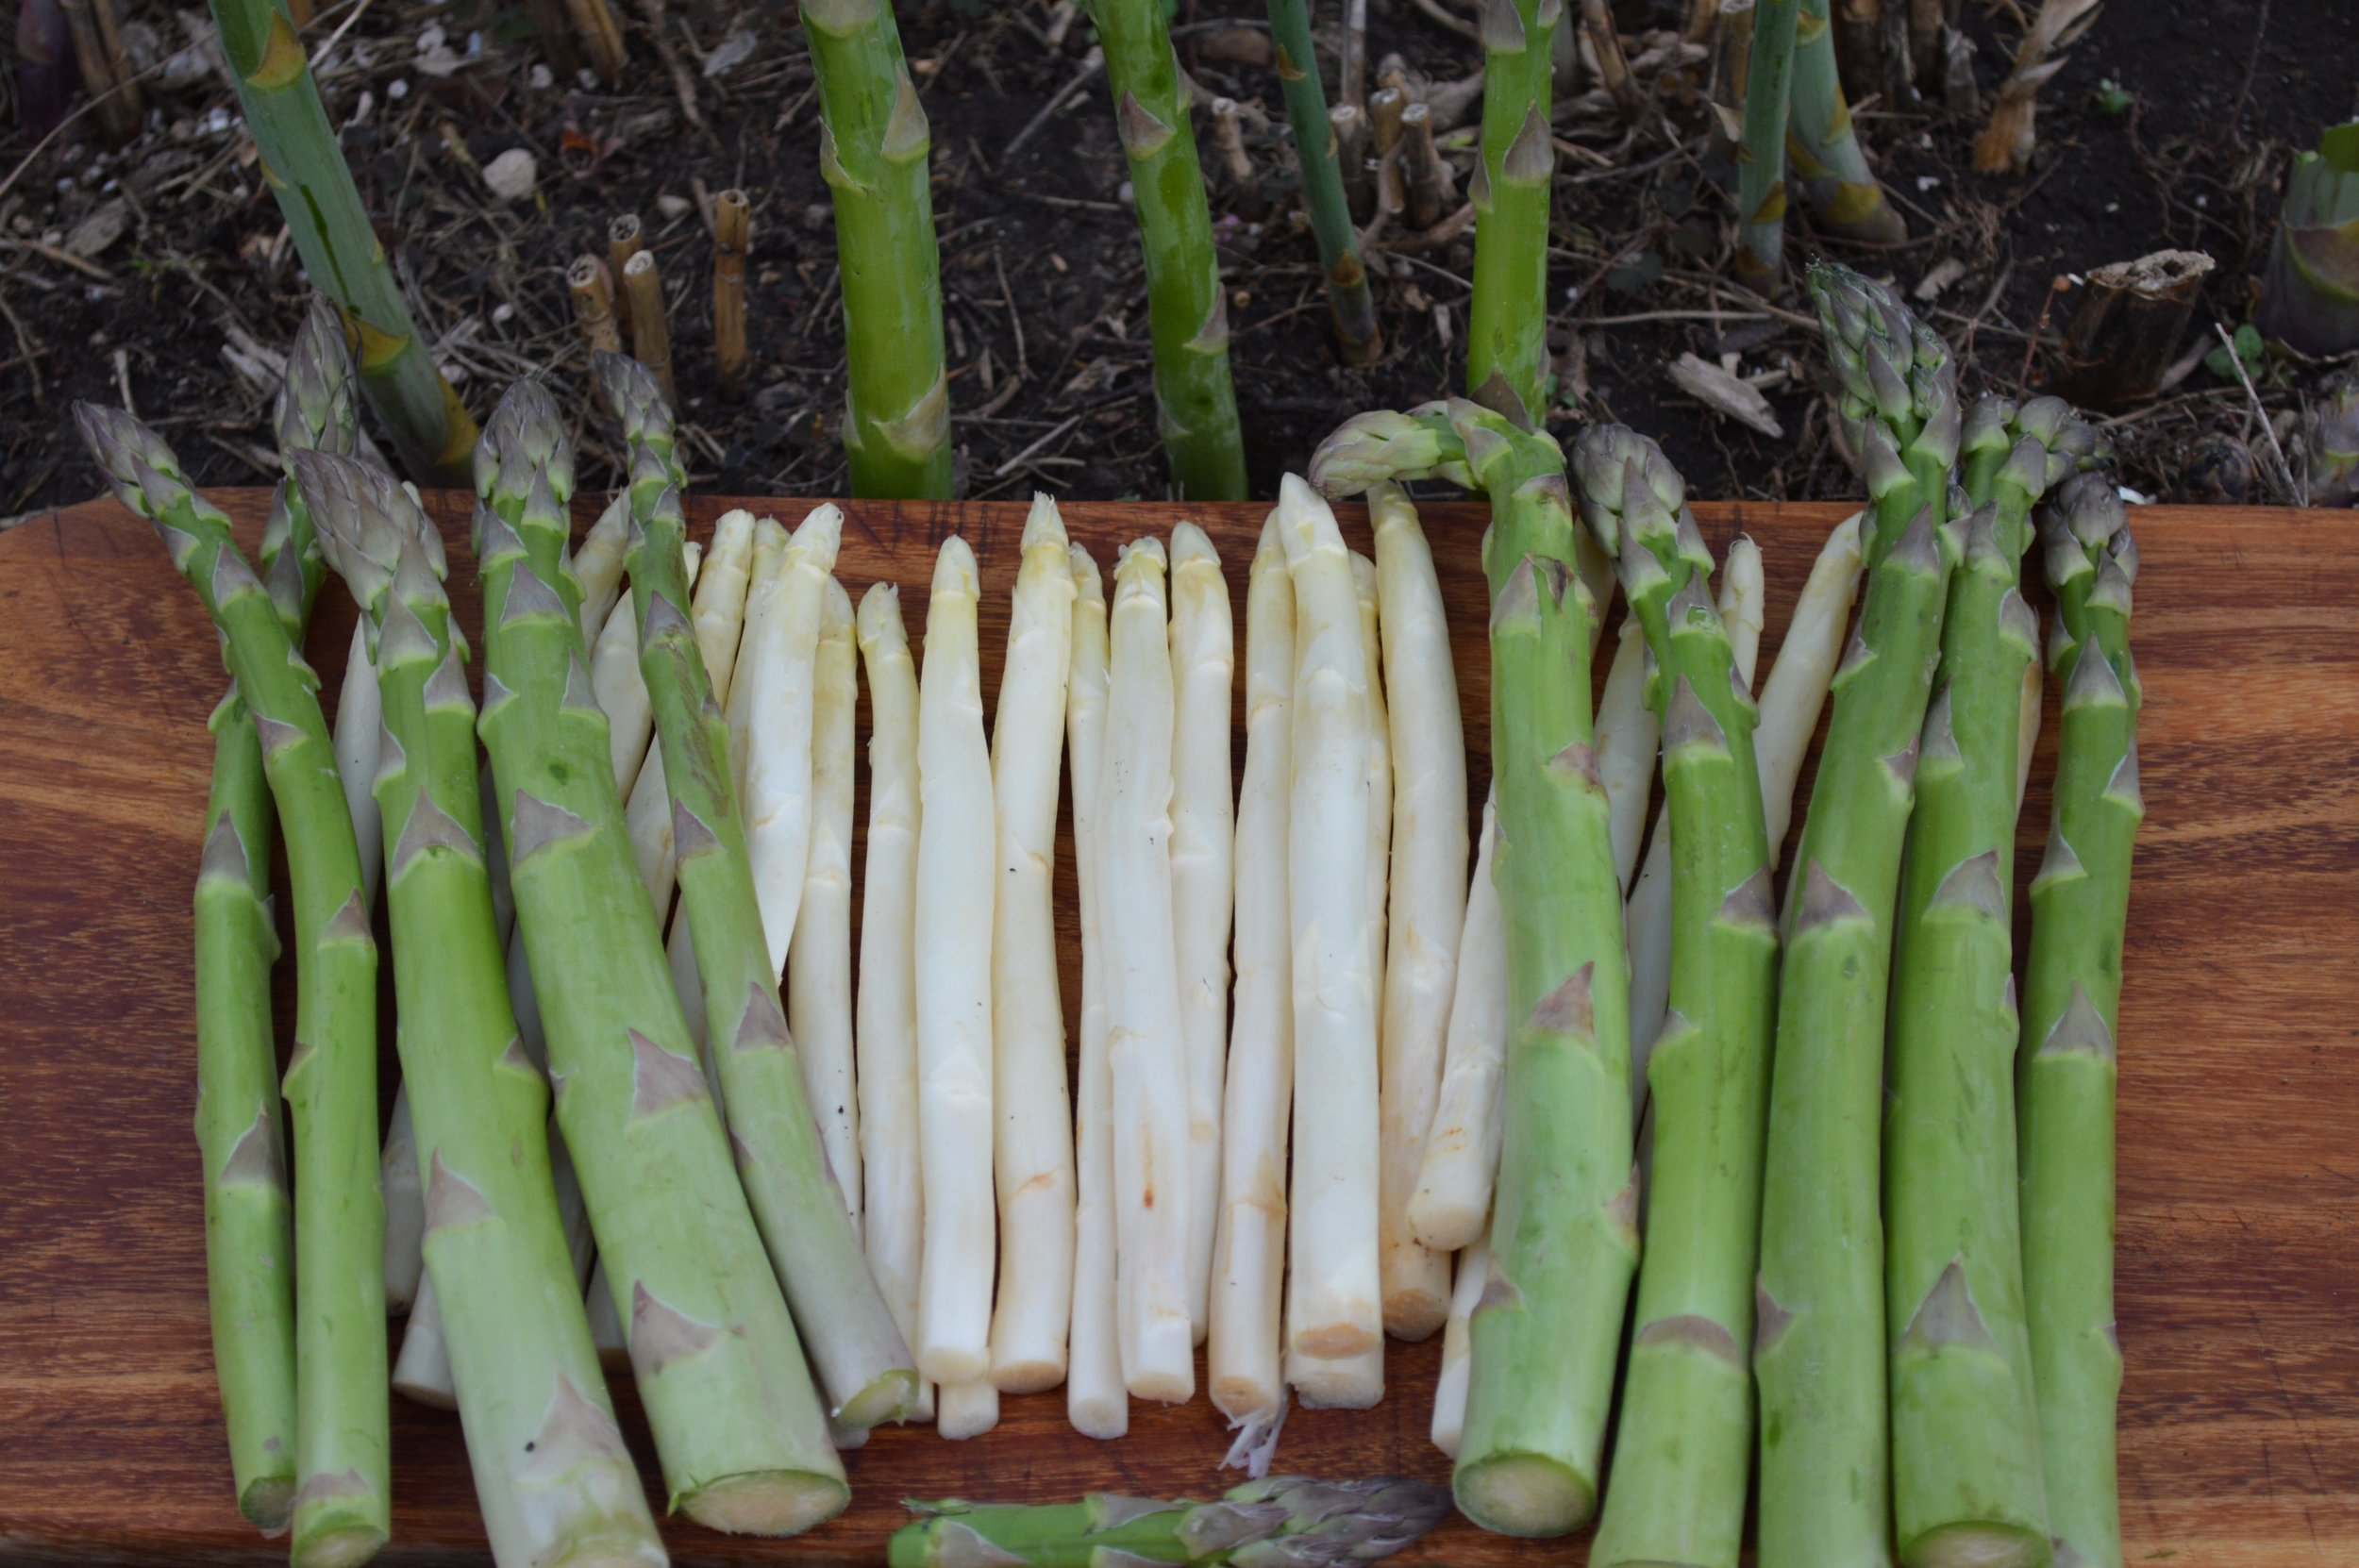 Asparagus can also be white!